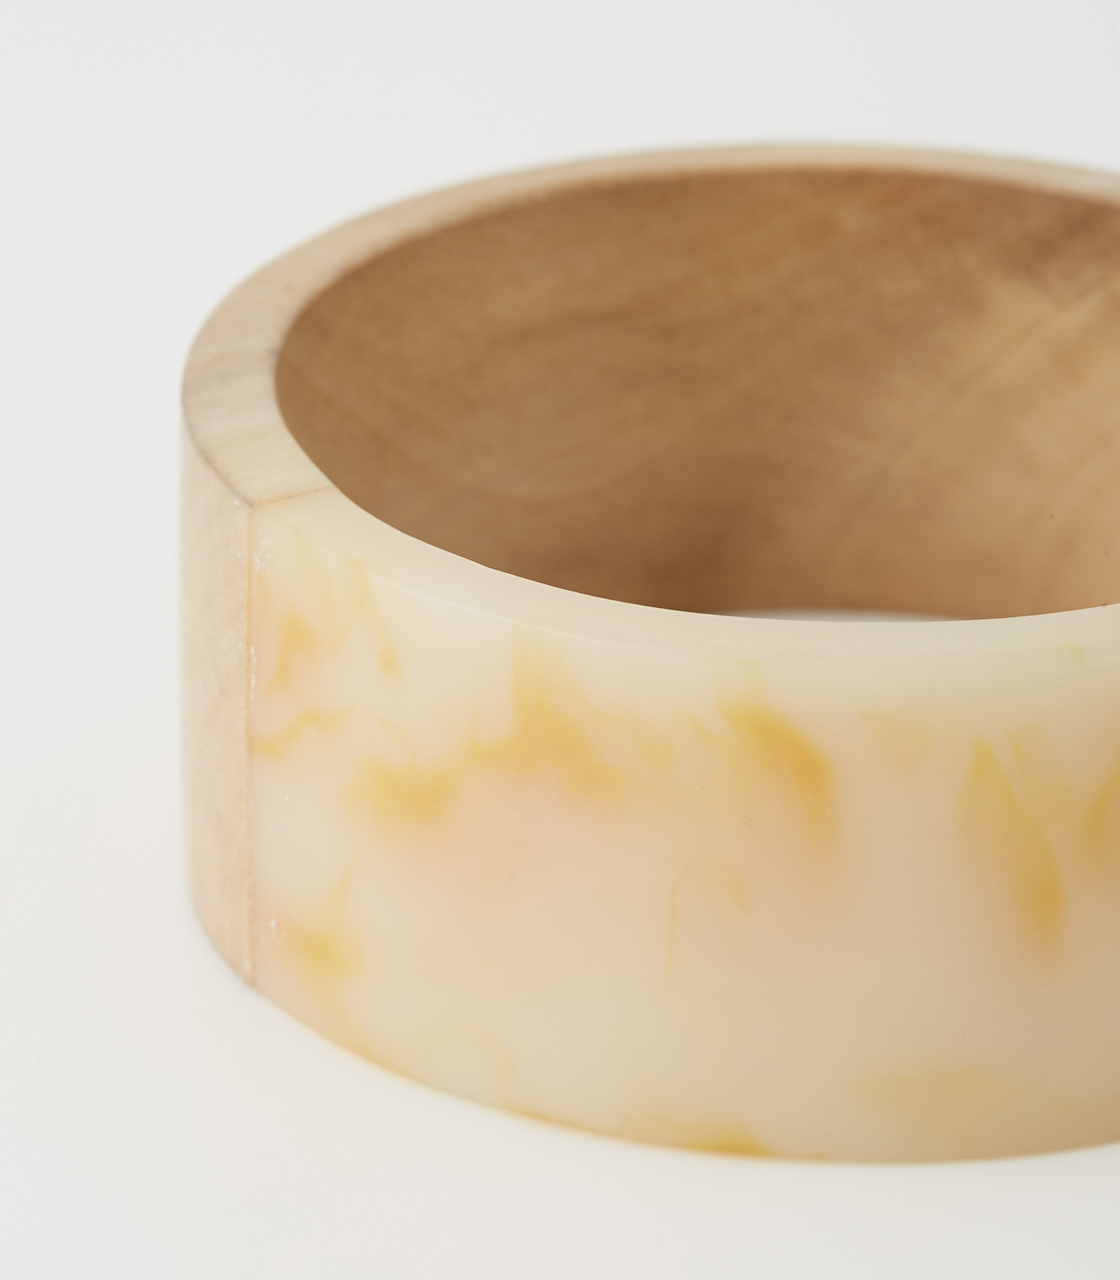 WOOD BLOCKING BANGLE 詳細画像 柄WHT 5